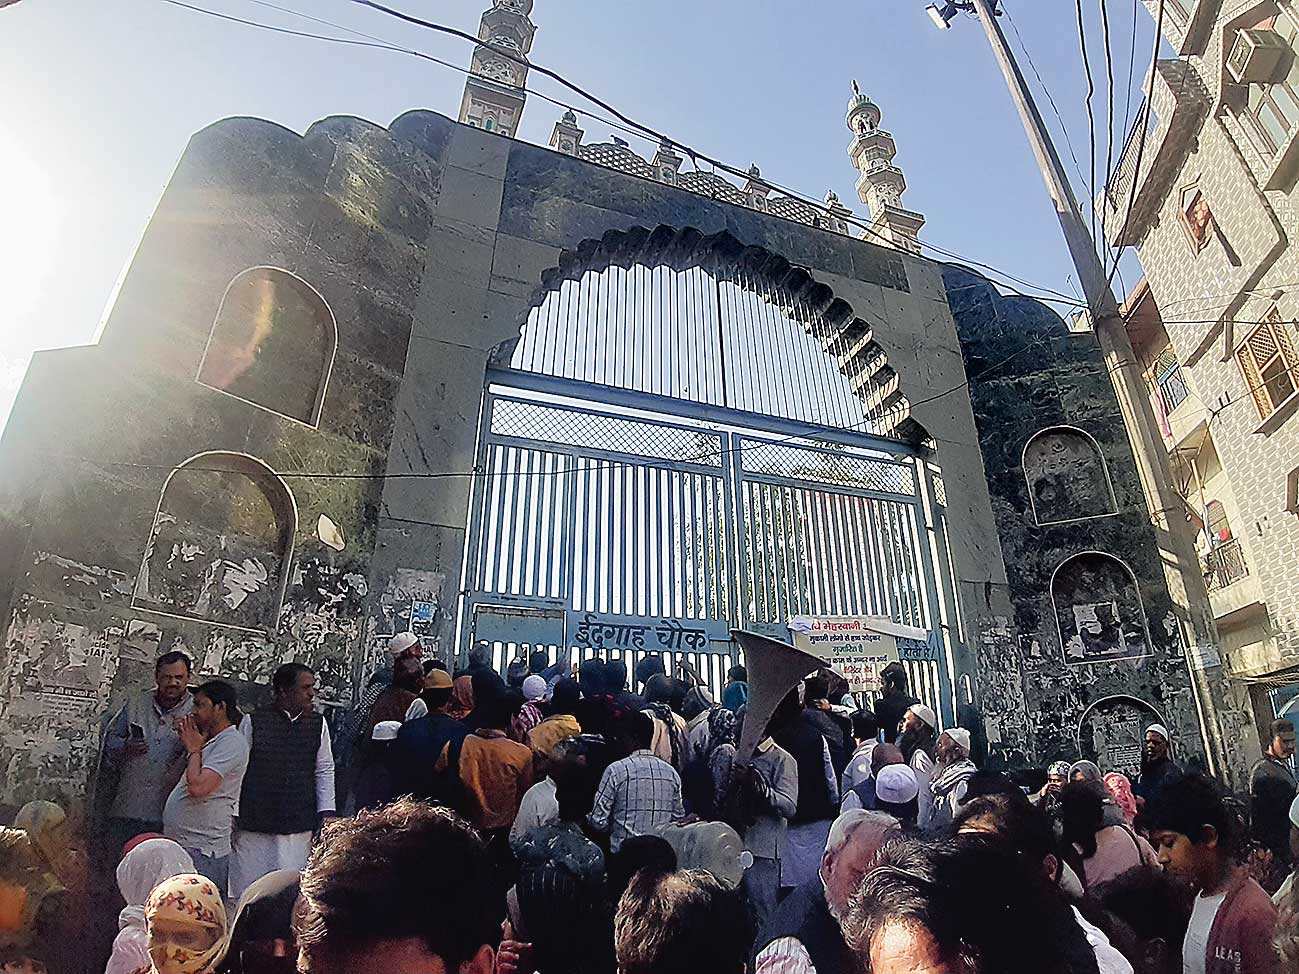 The throng at the entrance of the Mustafabad idgah.